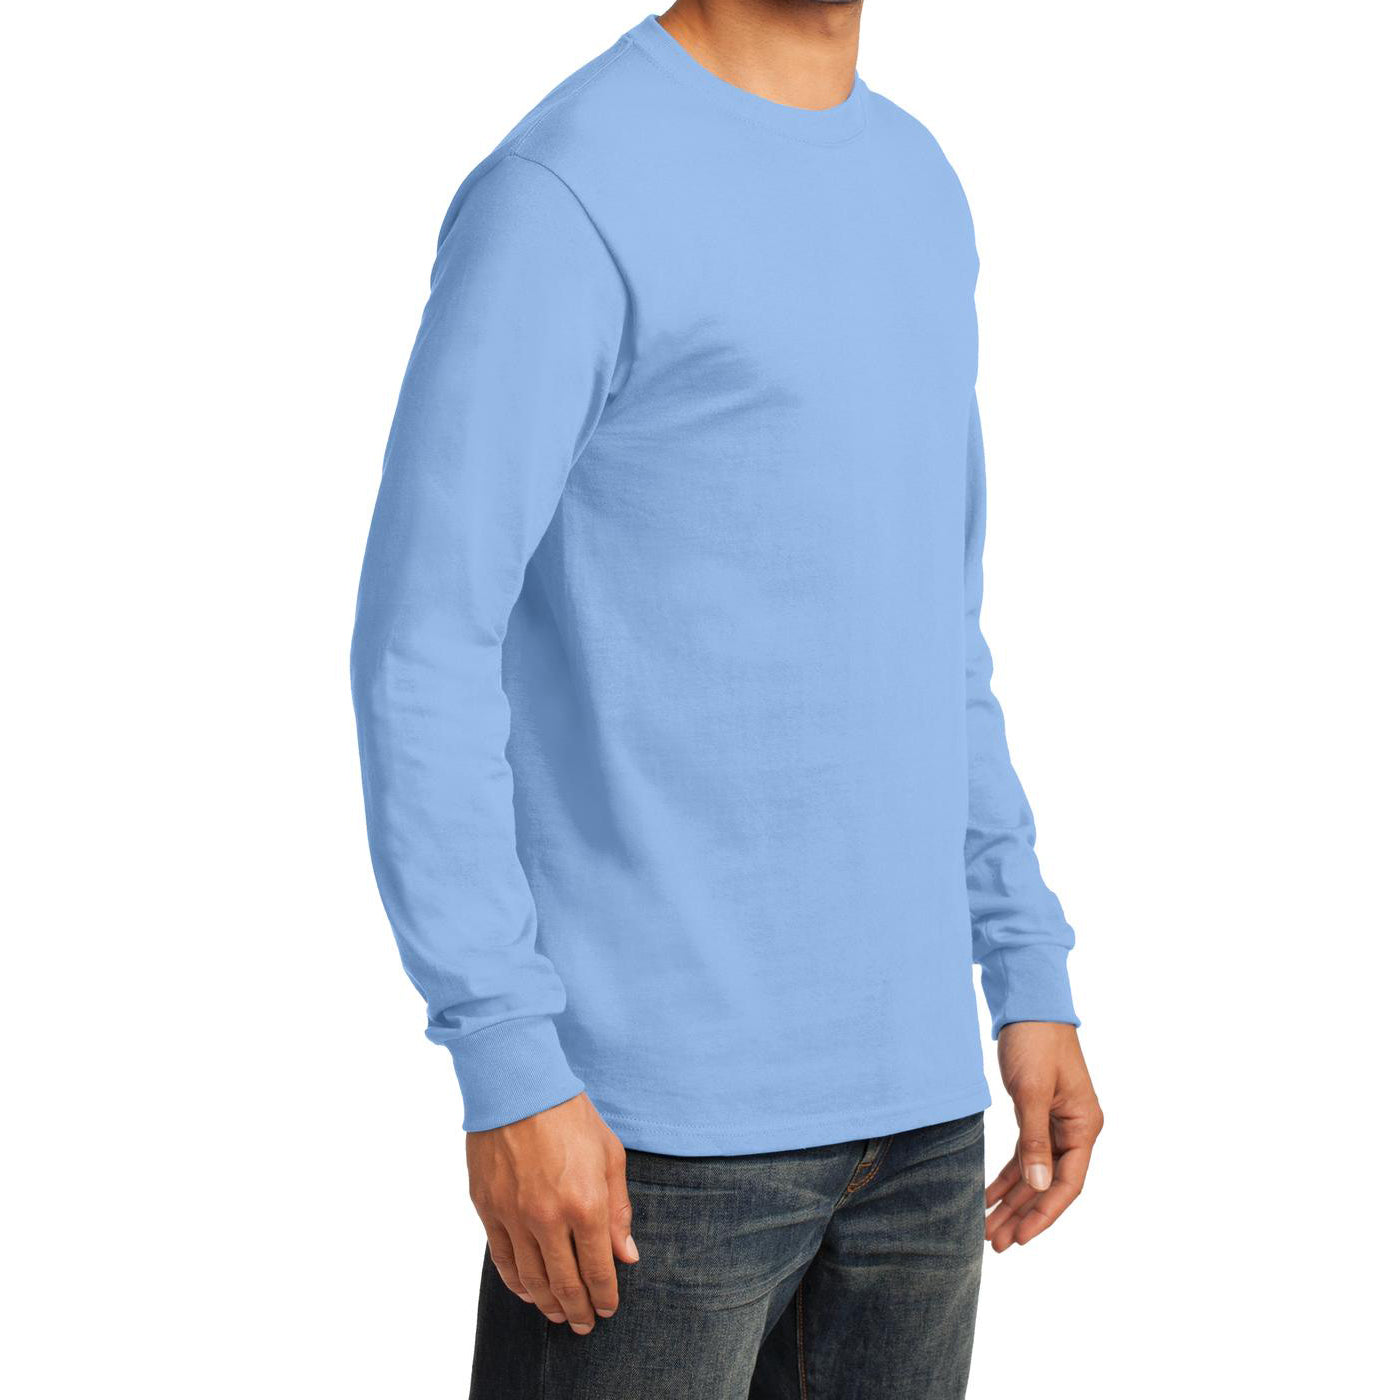 Men's Long Sleeve Essential Tee - Light Blue - Side